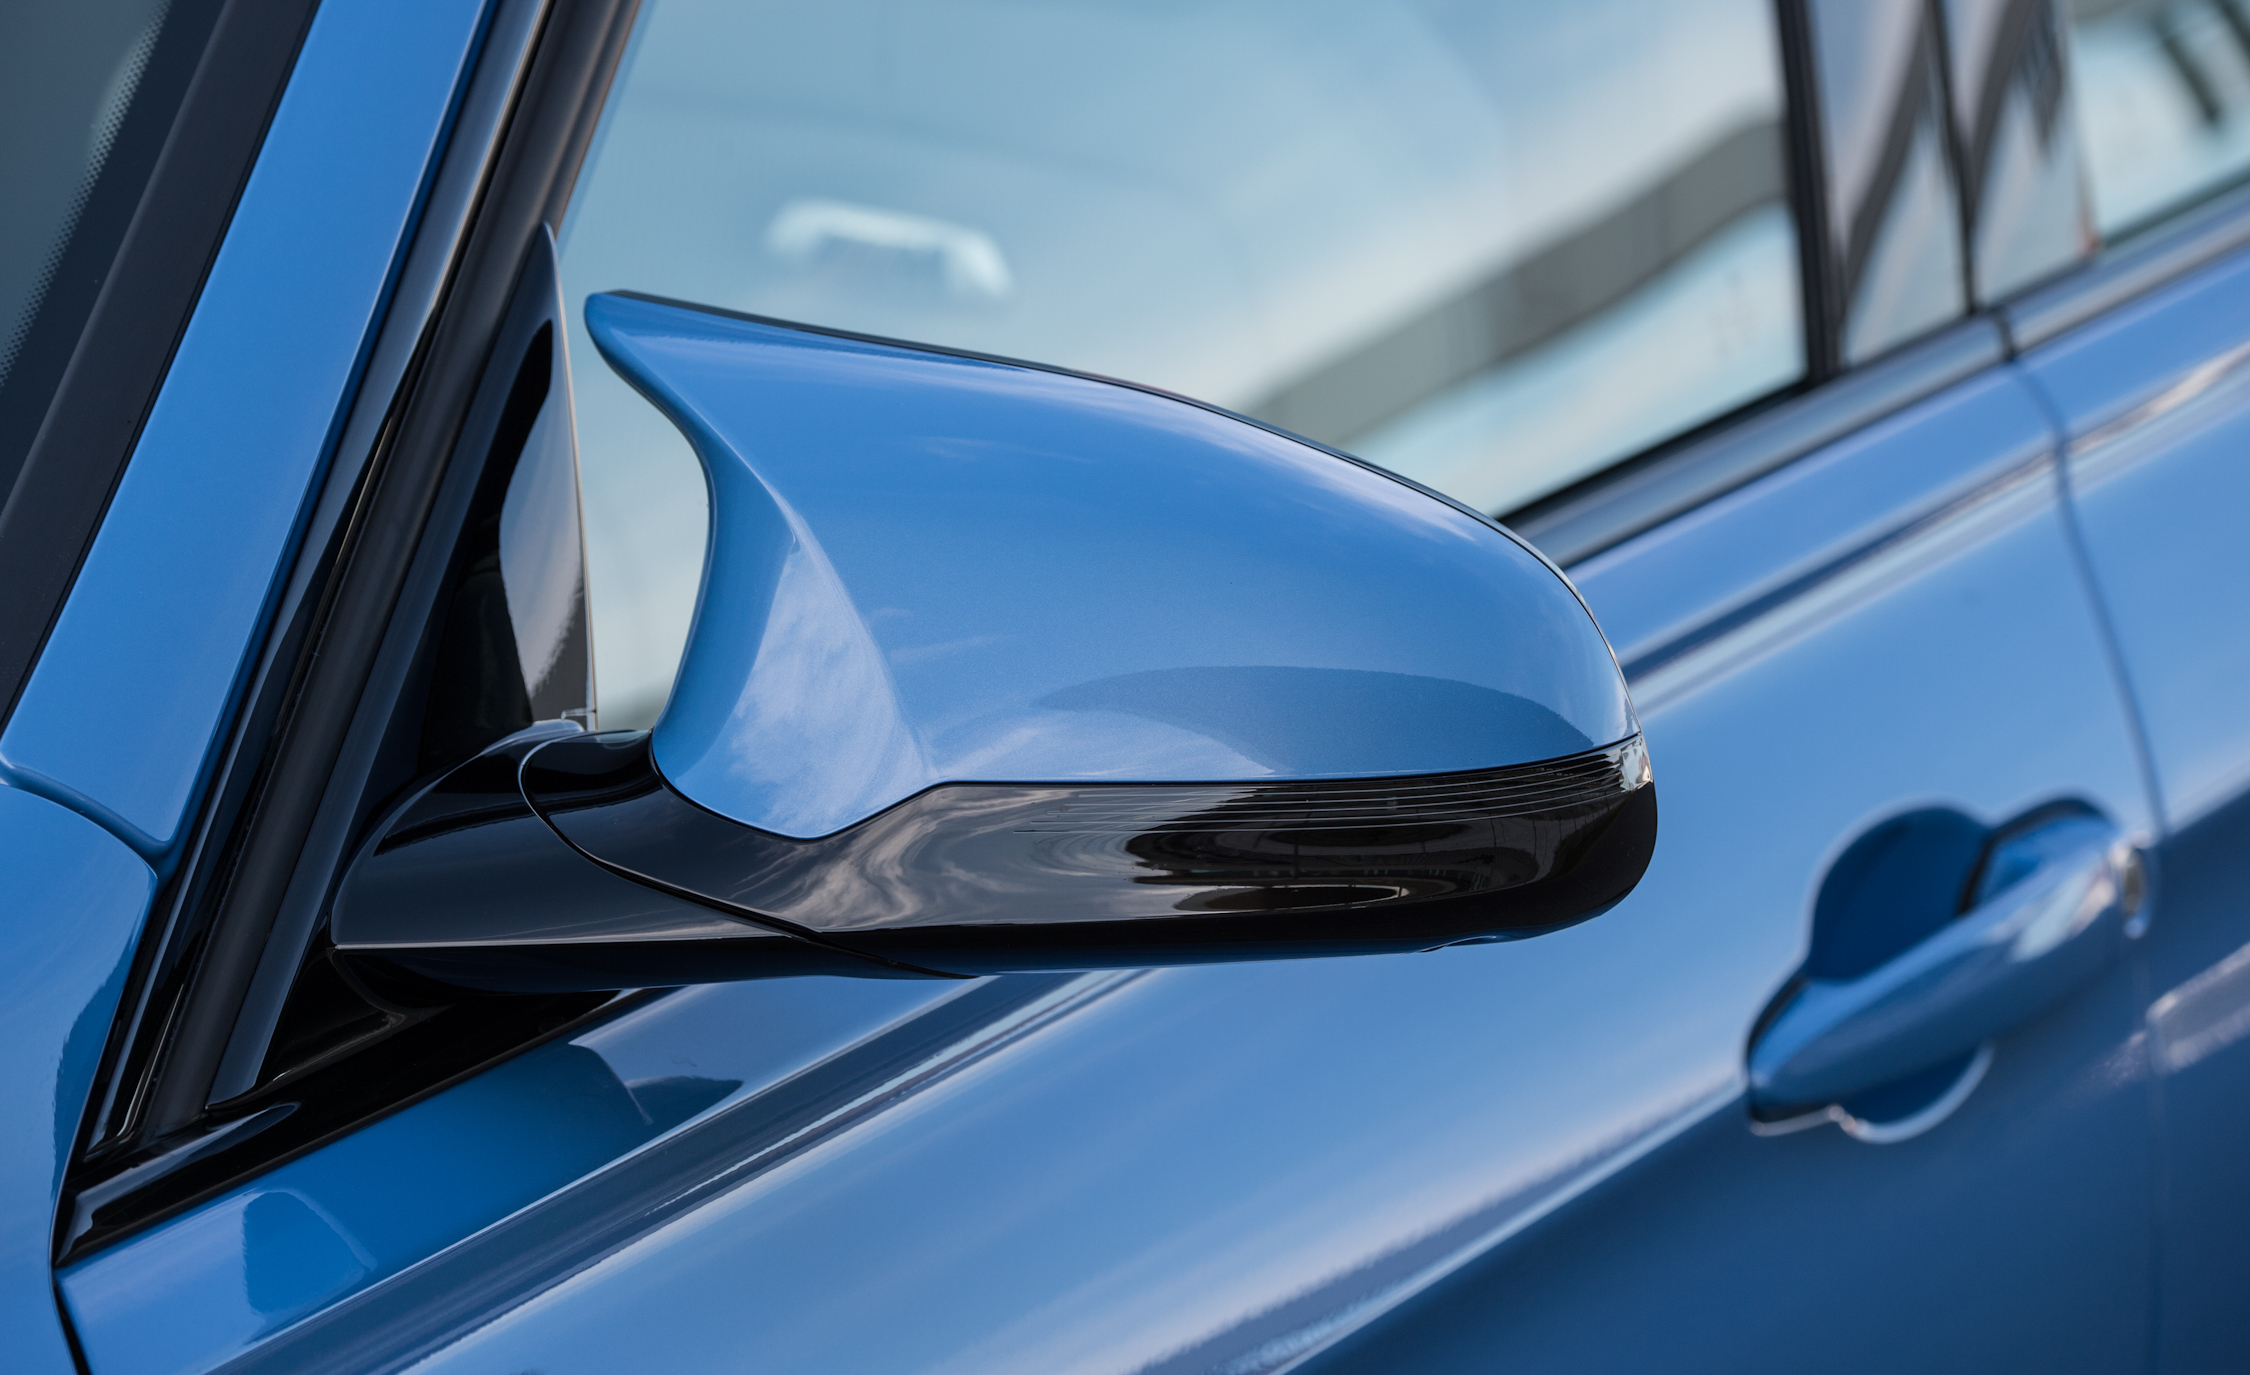 2015 BMW M3 Sedan Side View Mirror And Turn Indicator (Photo 36 of 55)